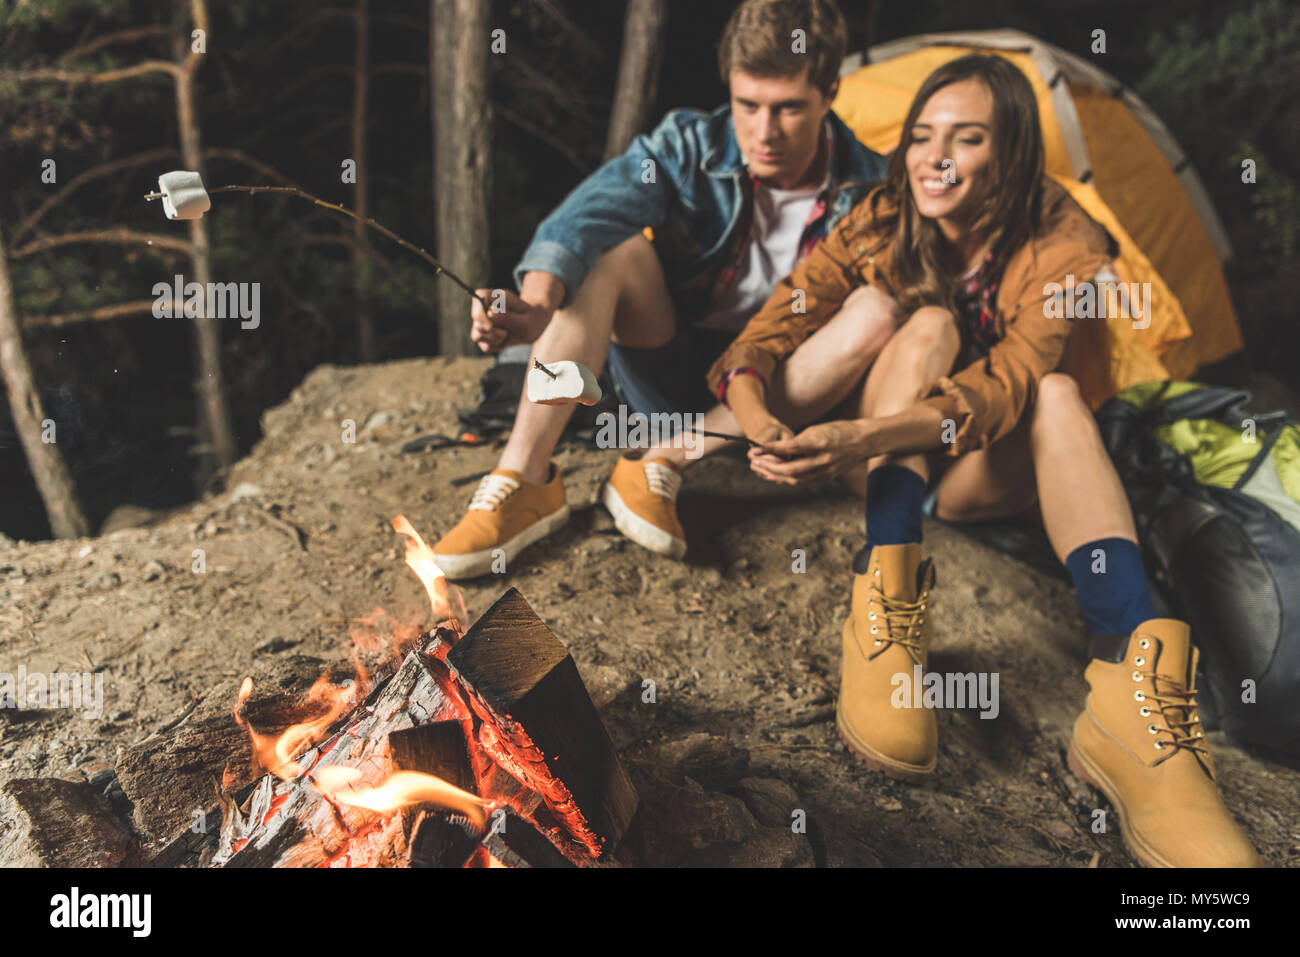 beautiful couple roasting marshmallow on sticks in camping trip - Stock Image